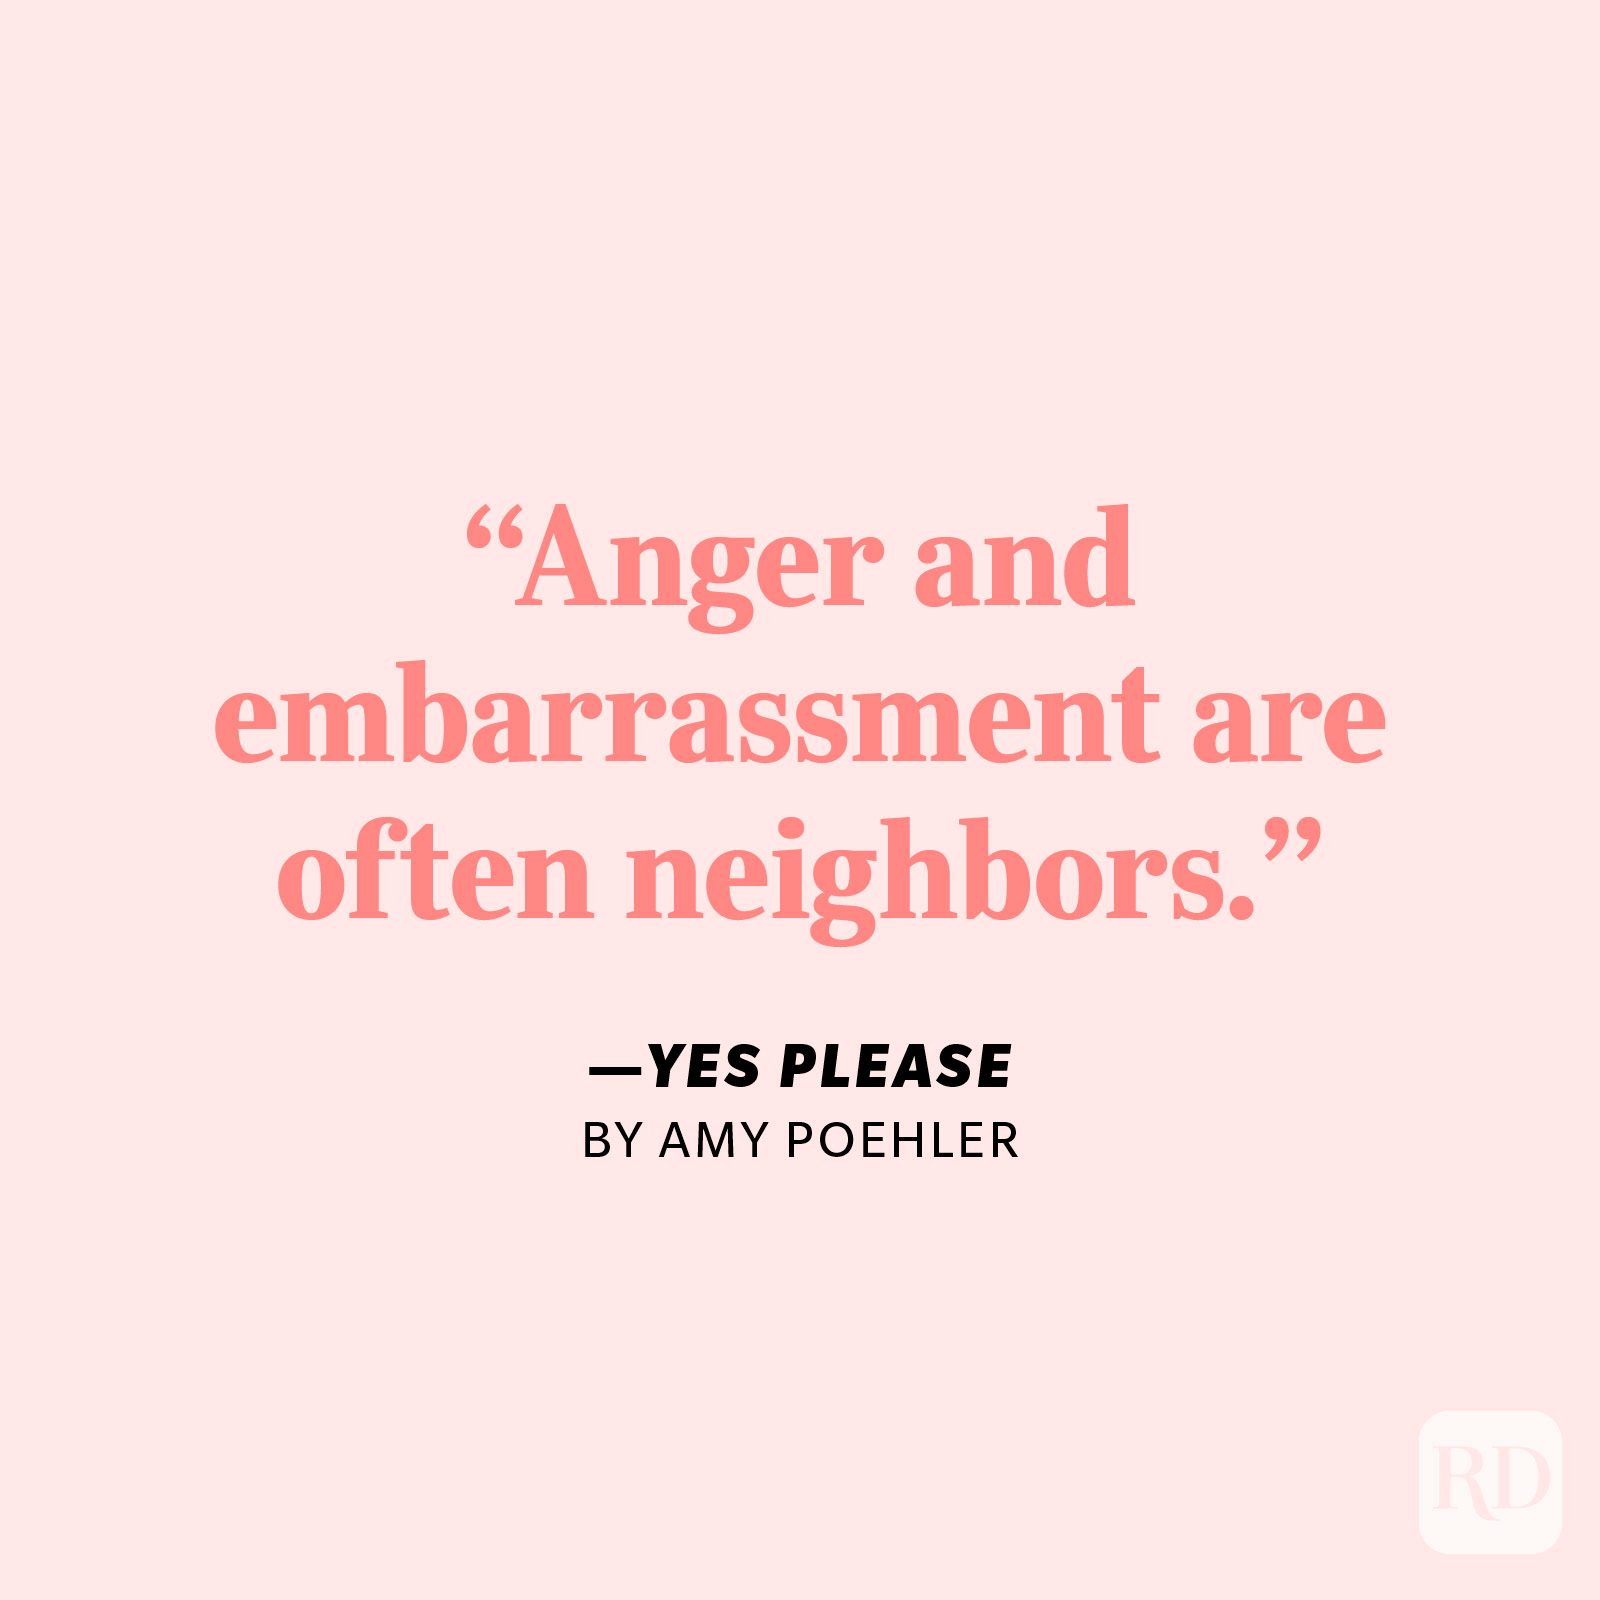 """Yes Please by Amy Poehler """"Anger and embarrassment are often neighbors."""""""